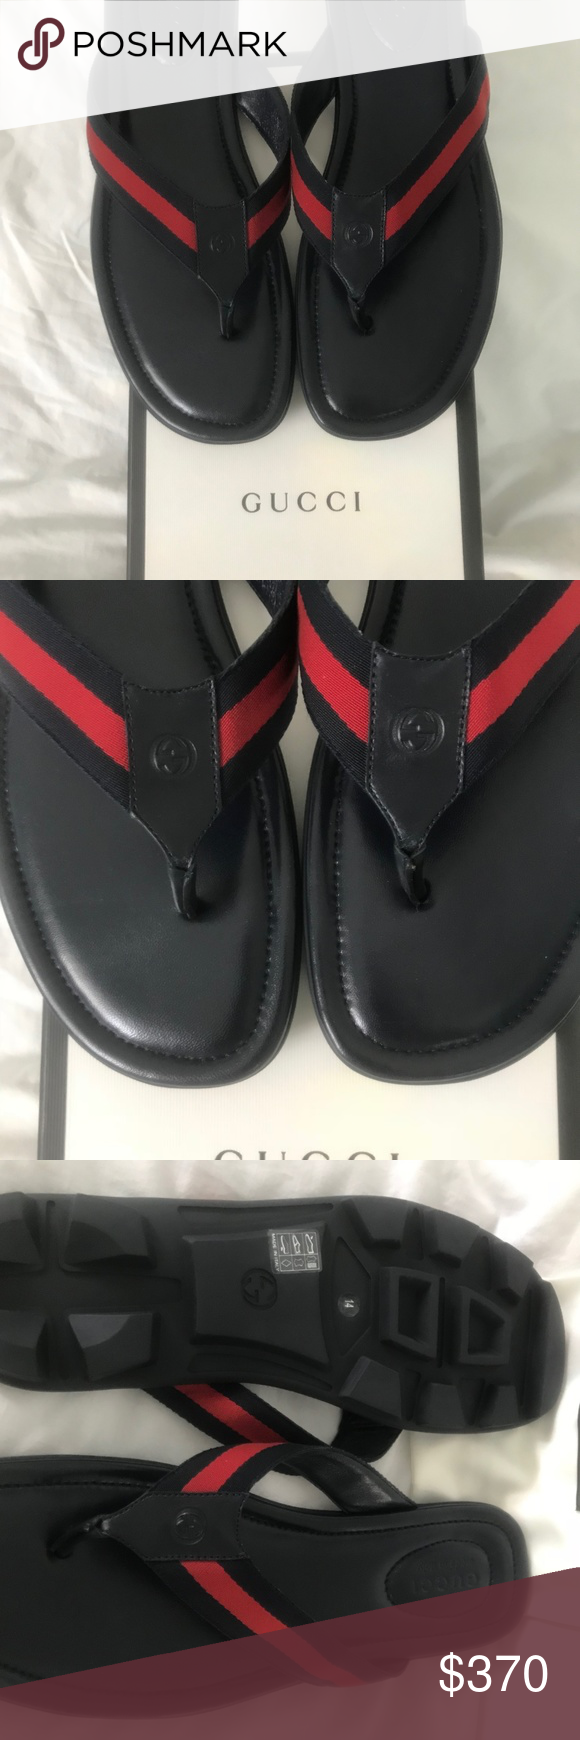 7d0d484b1b53 Never worn brand new Gucci Mens Titan Thong Sandal A signature Gucci web  strap imbues these sun-ready sandals with an instantly recognizable flair.